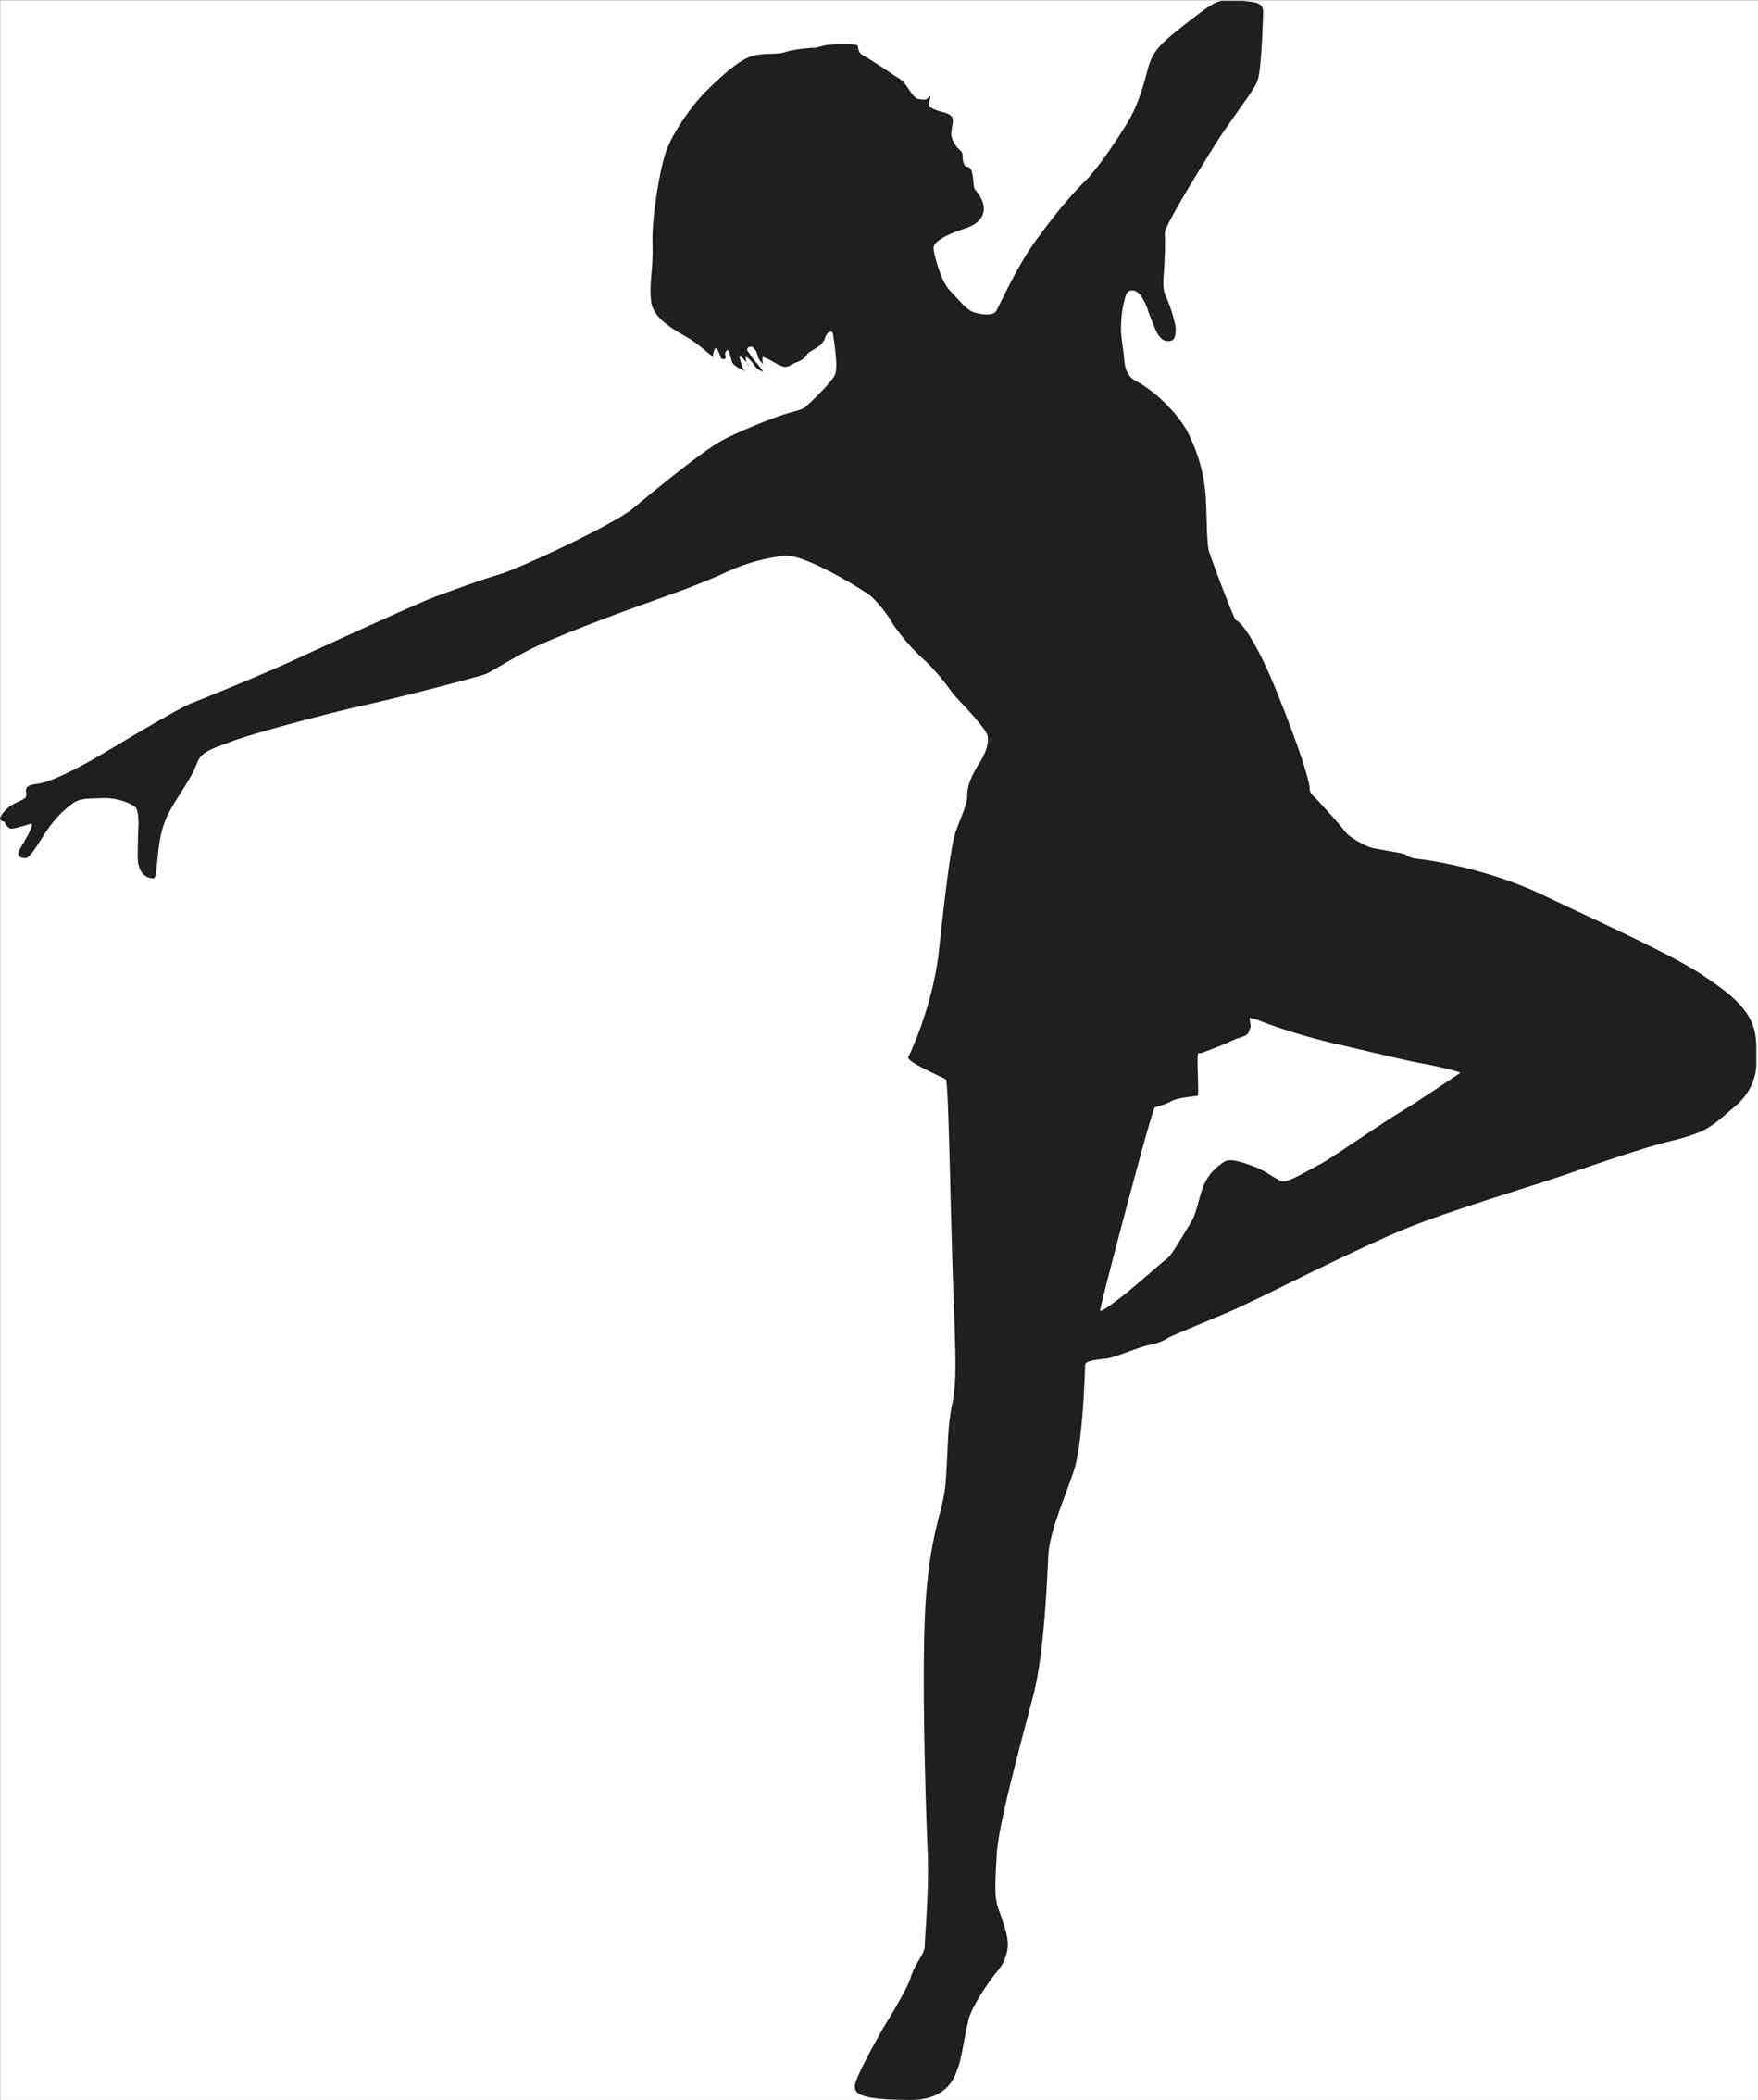 Dancer silhouette at getdrawings. Dancing clipart homecoming dance image freeuse library